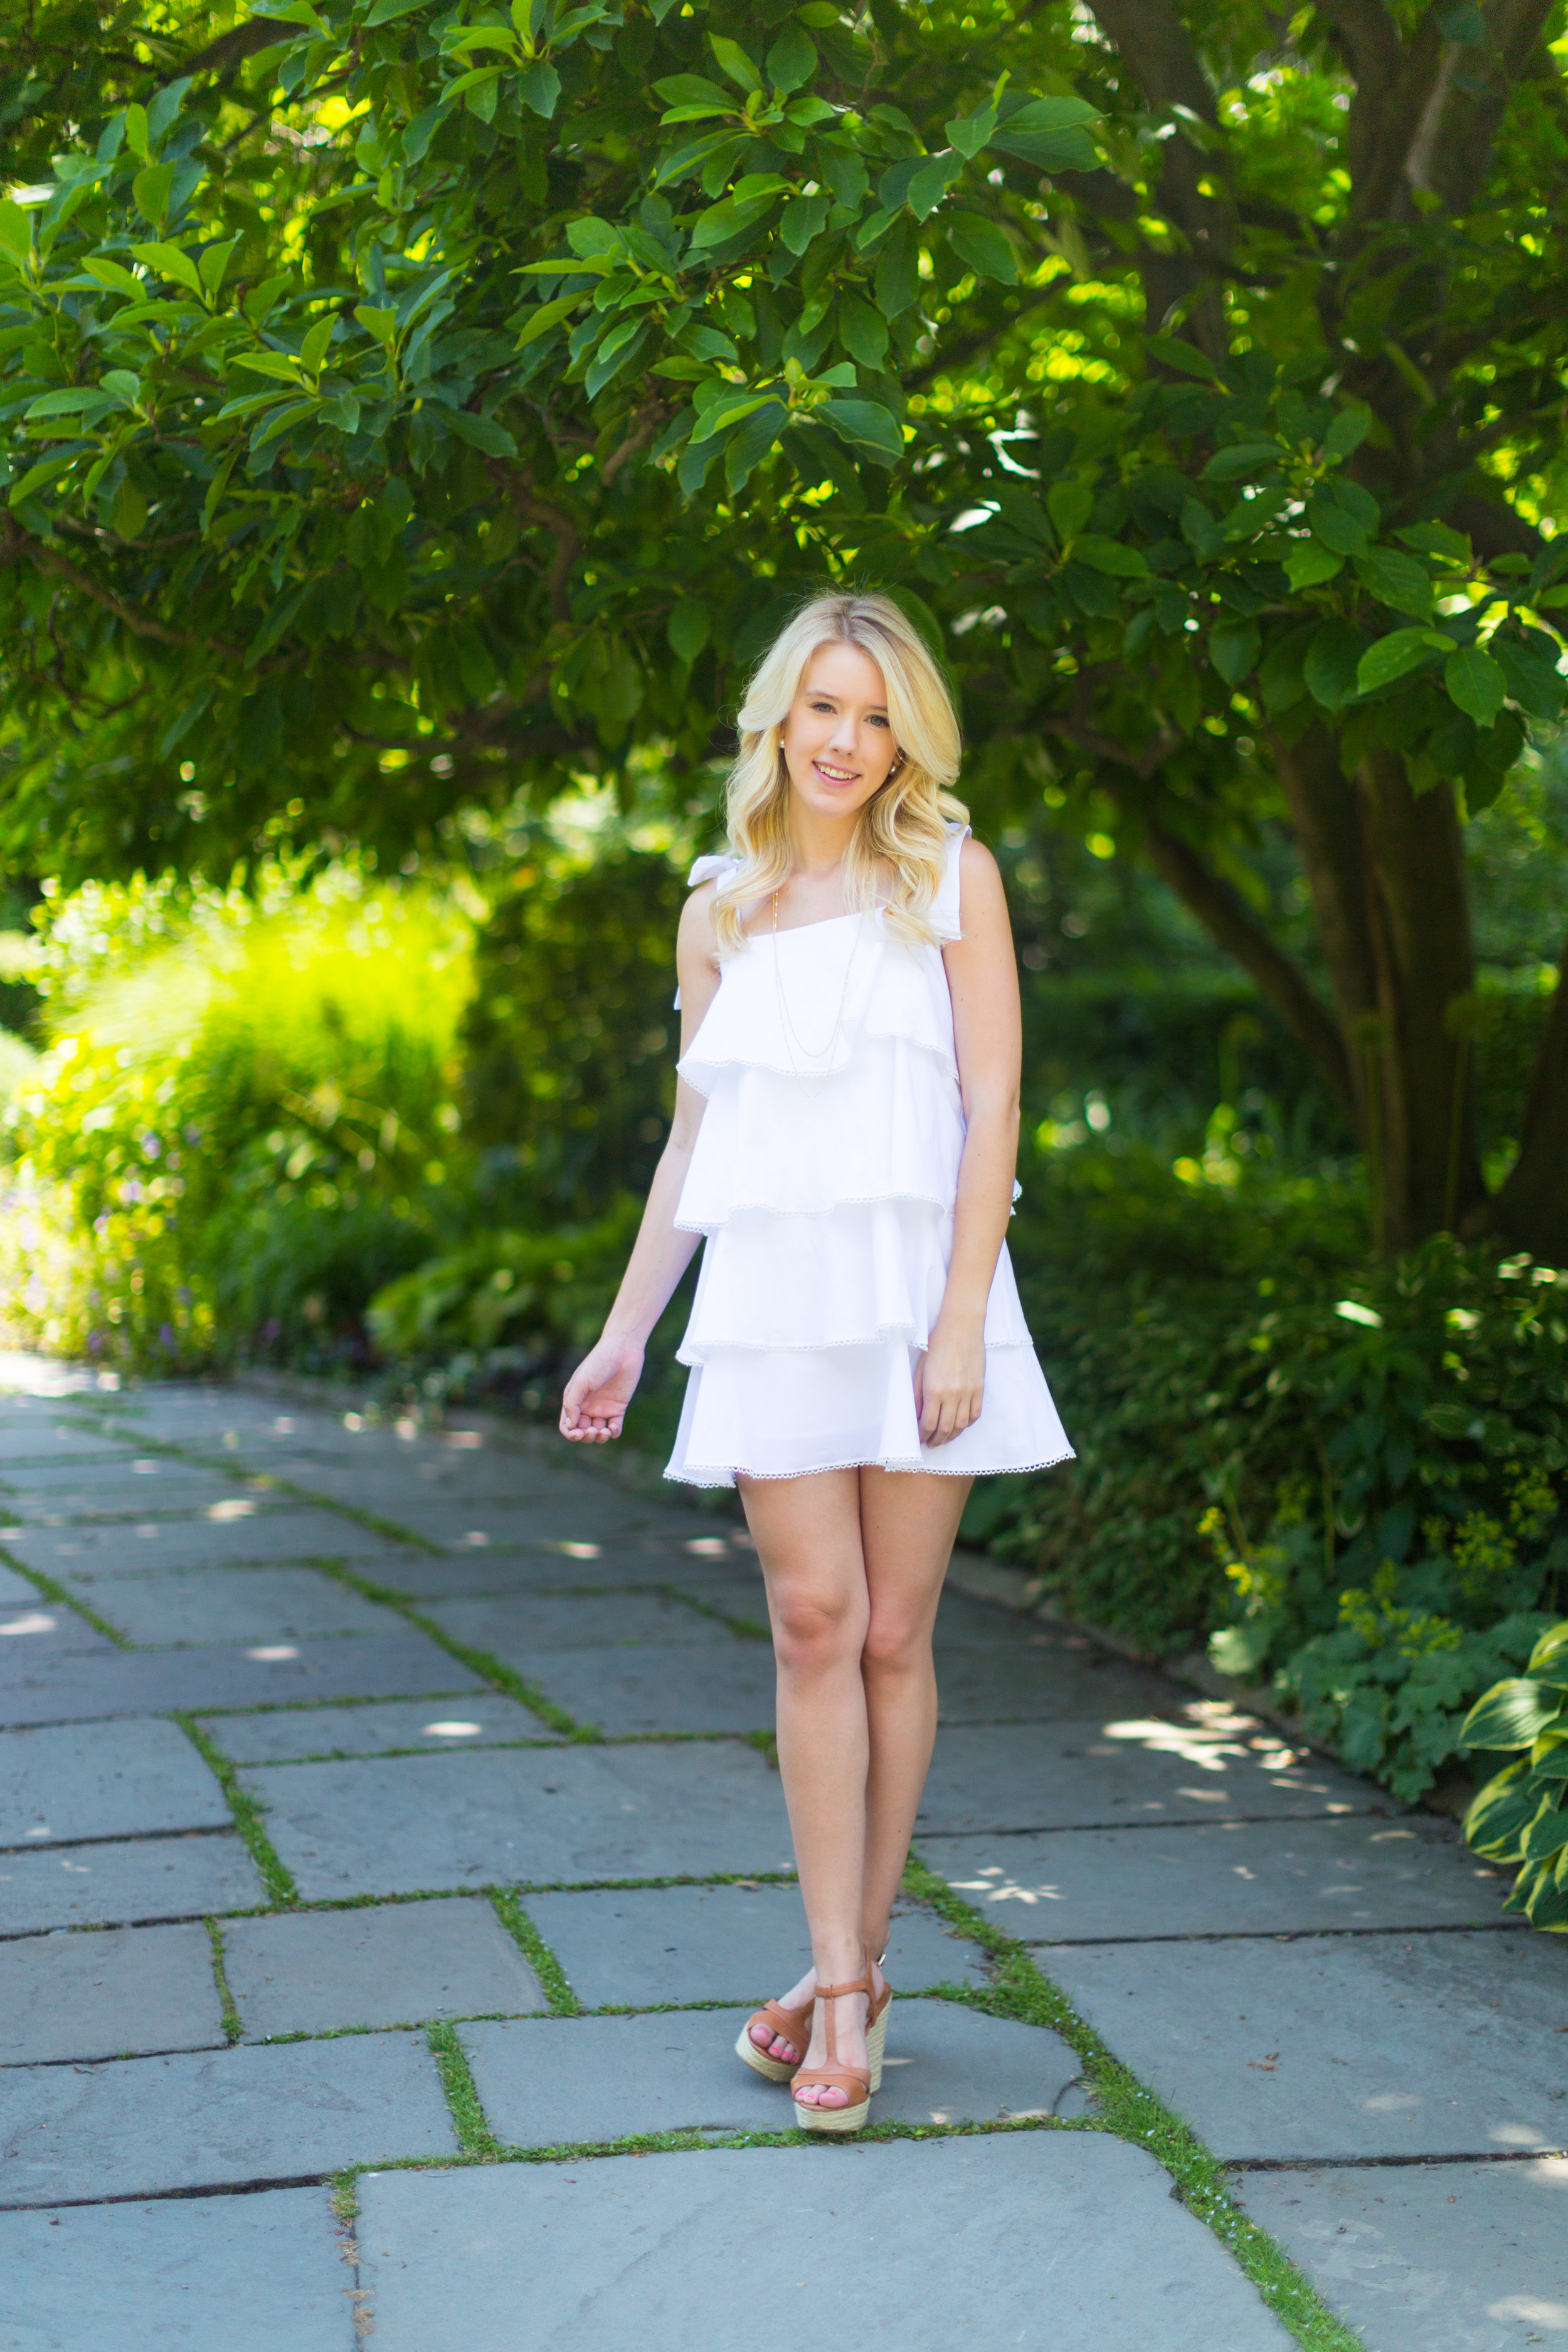 NYC Central Park Summer Fashion White Ruffled Dress-2.jpg